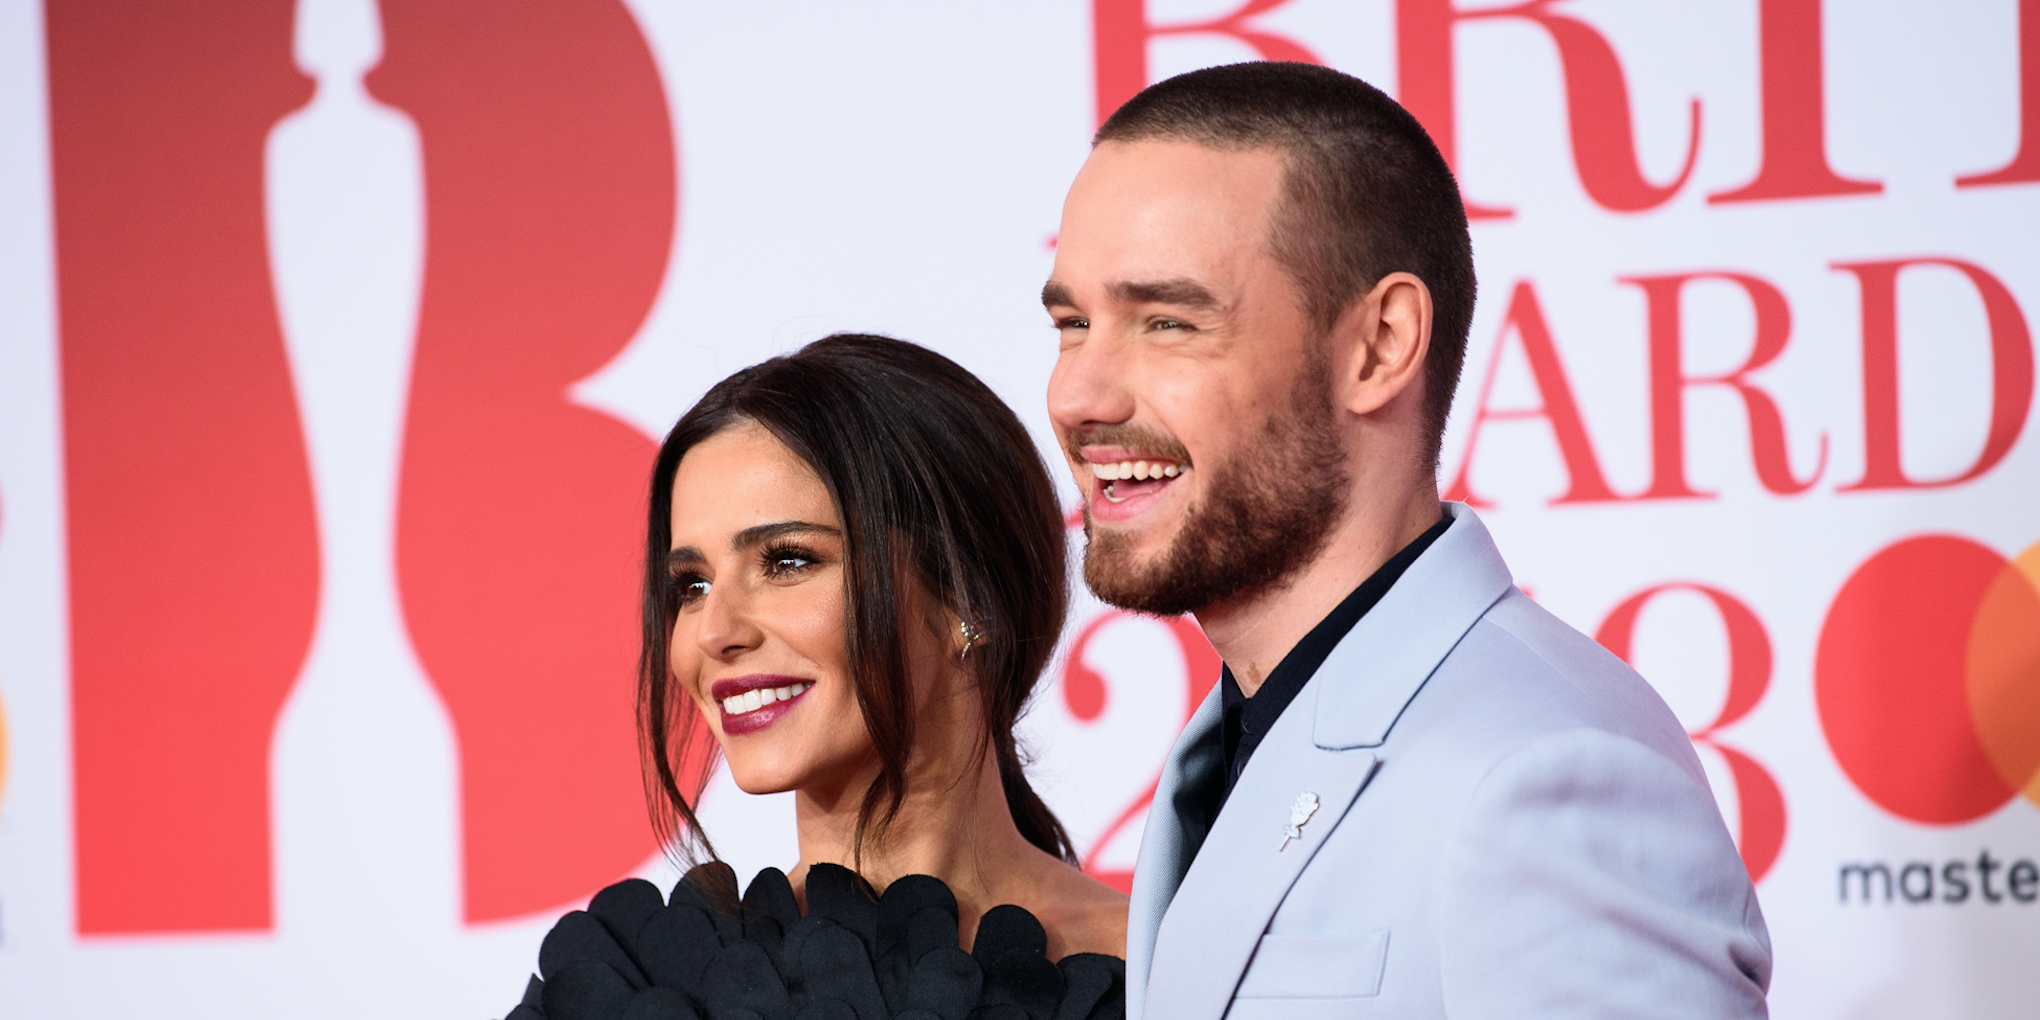 Cheryl and Liam Payne attends The BRIT Awards 2018 held at The O2 Arena on February 21, 2018 in London, England